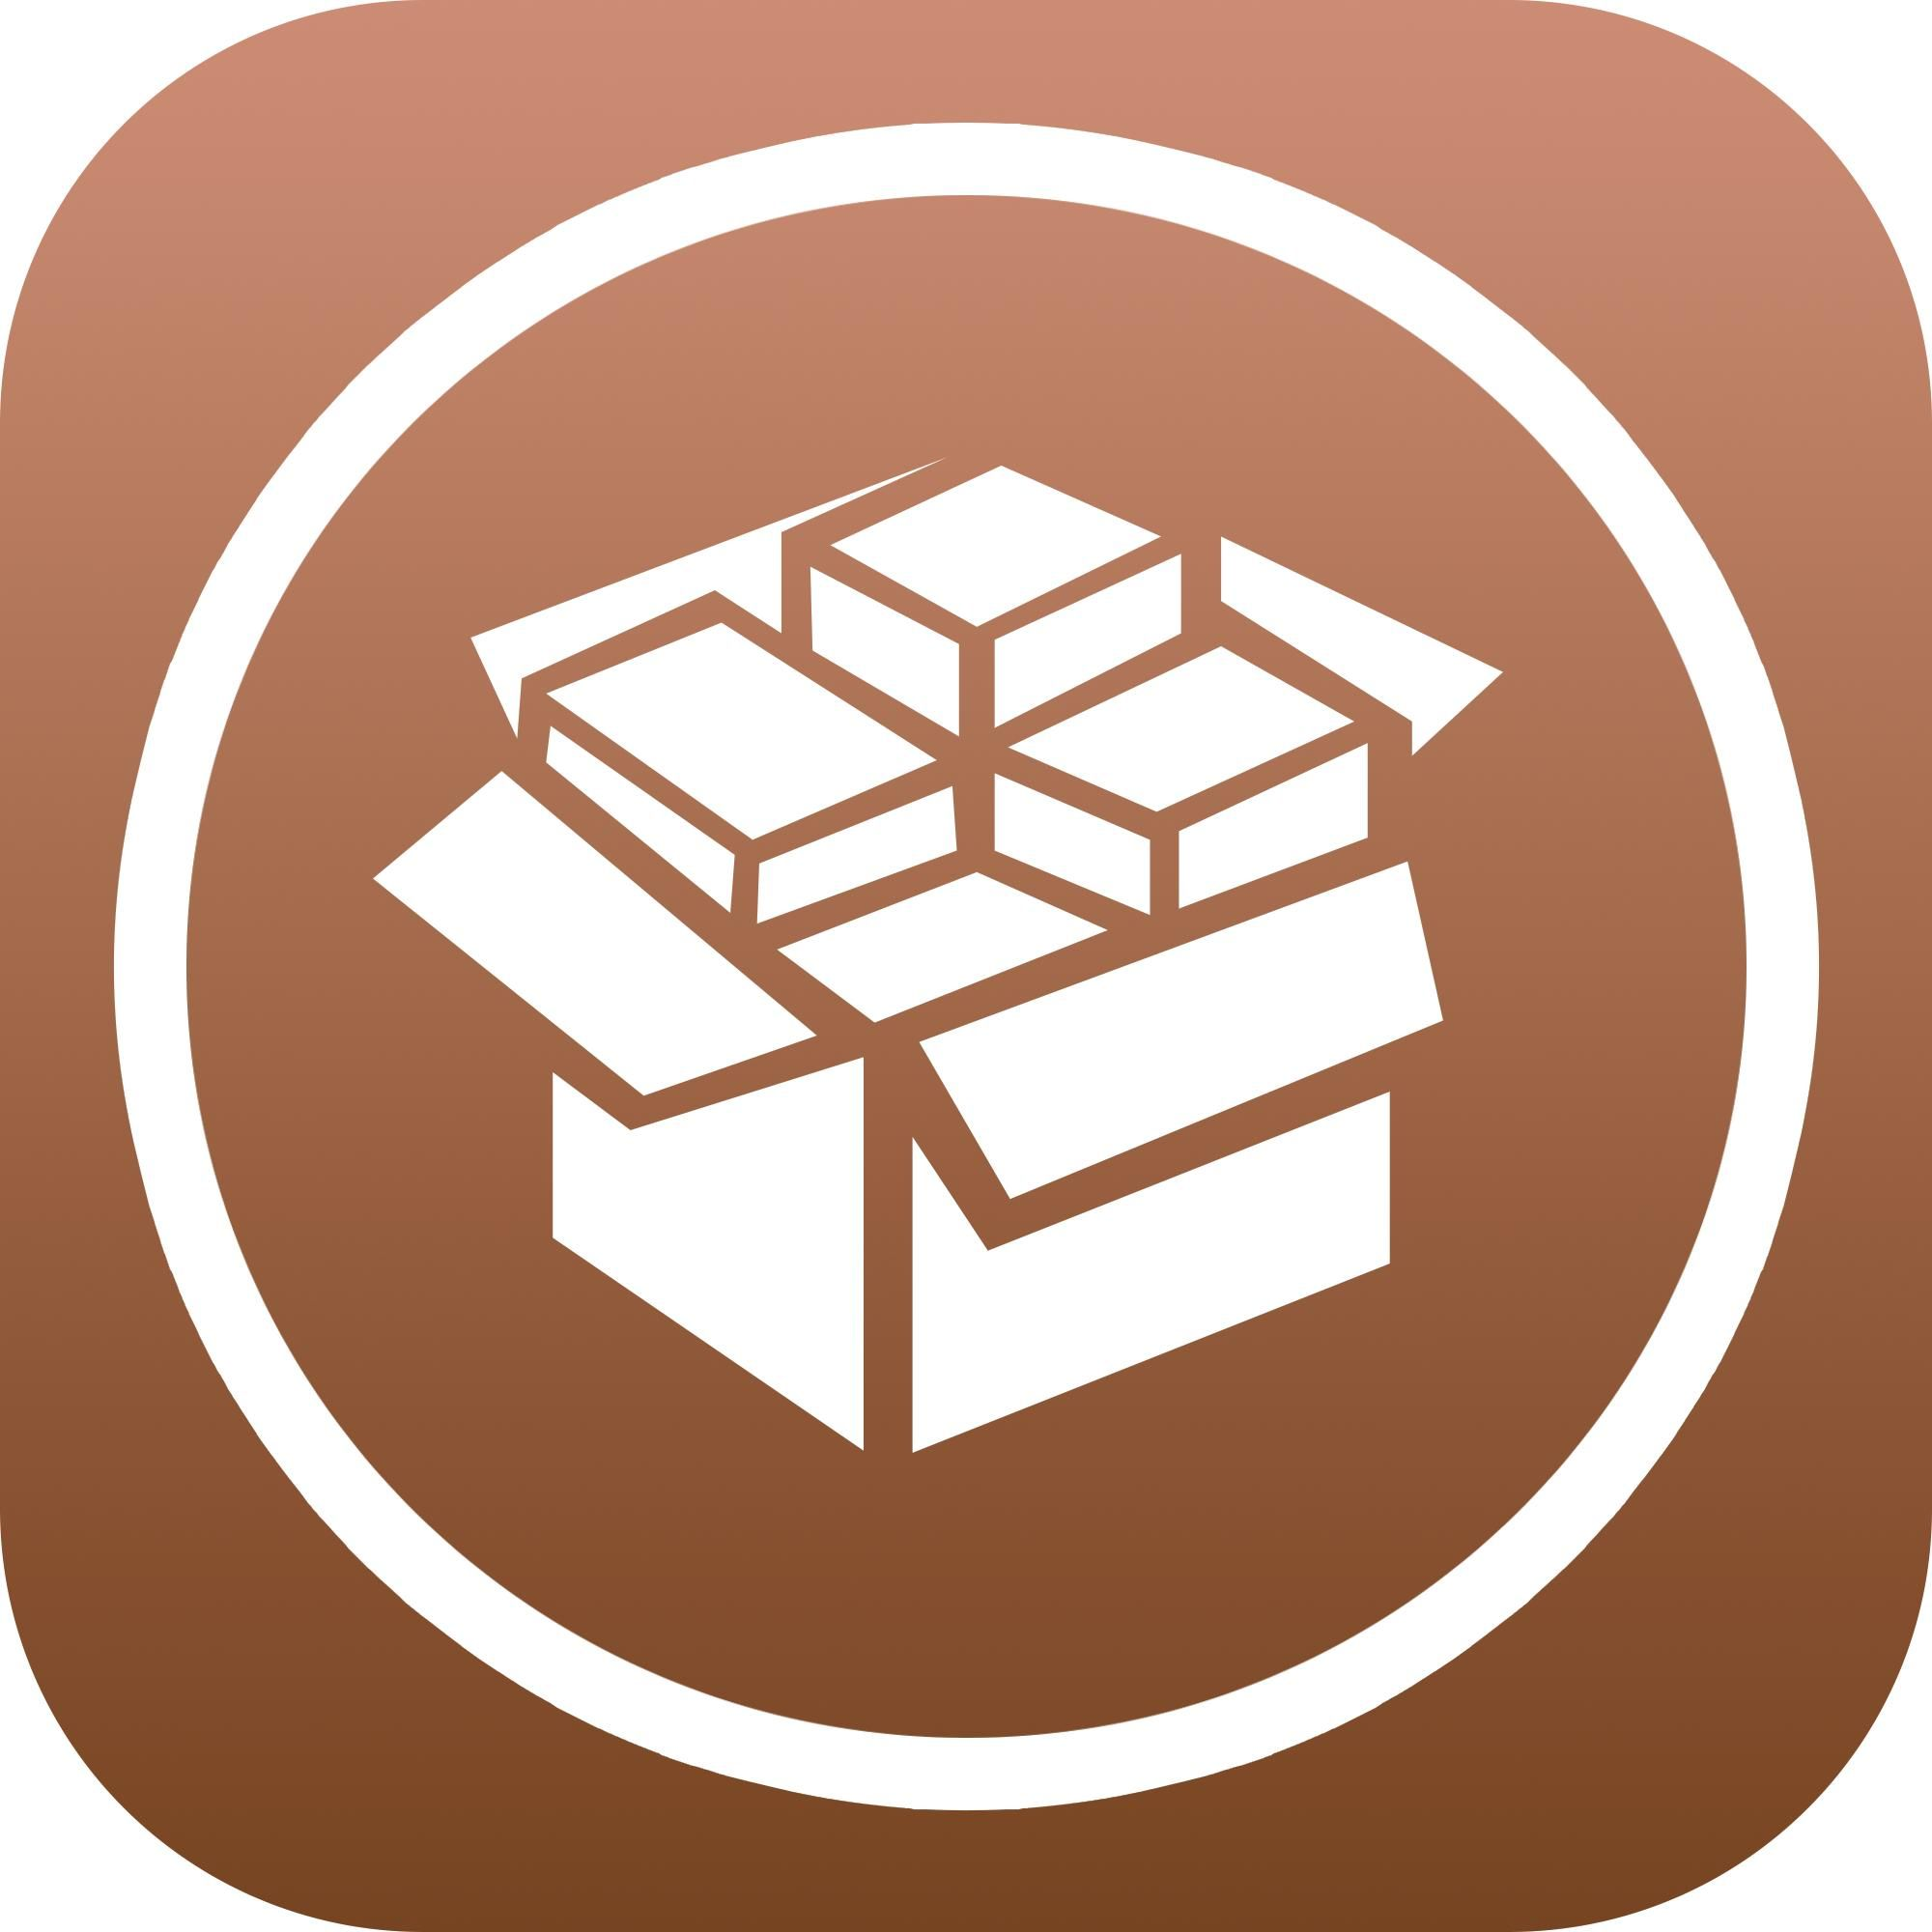 cydia download is about freedom, and making your iPhone your